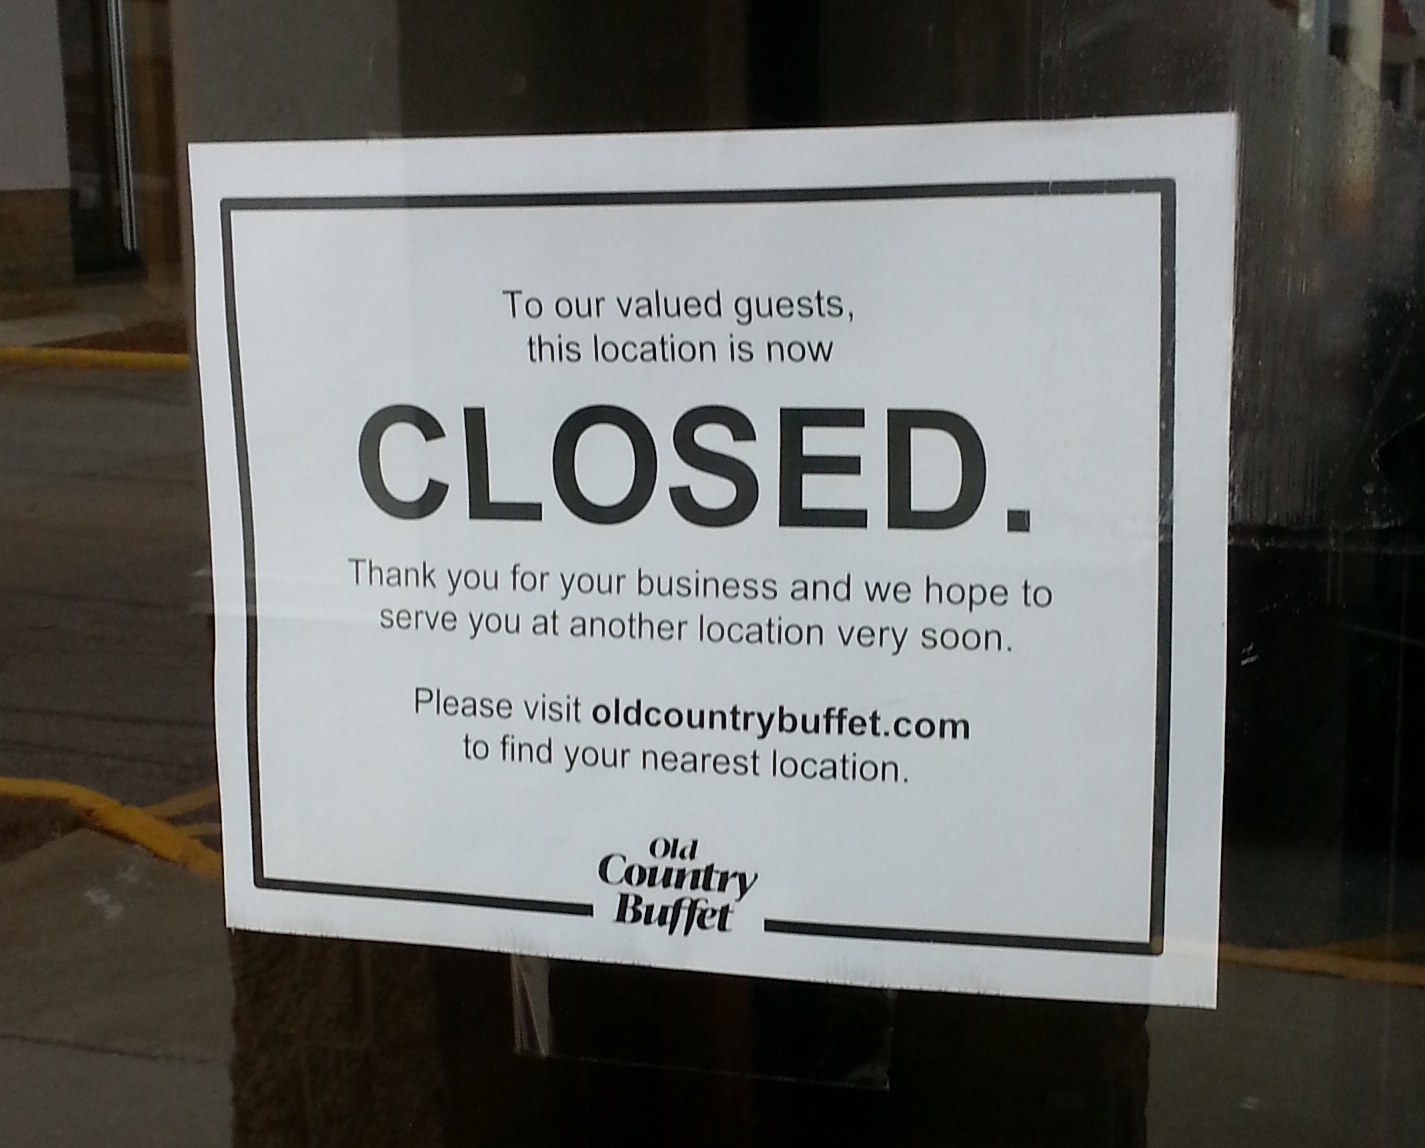 The Old Country Buffet In Park Center Plaza At 159th Street And Harlem Avenue Tinley Closed Abruptly Recently Sports Authority To Close 3 S